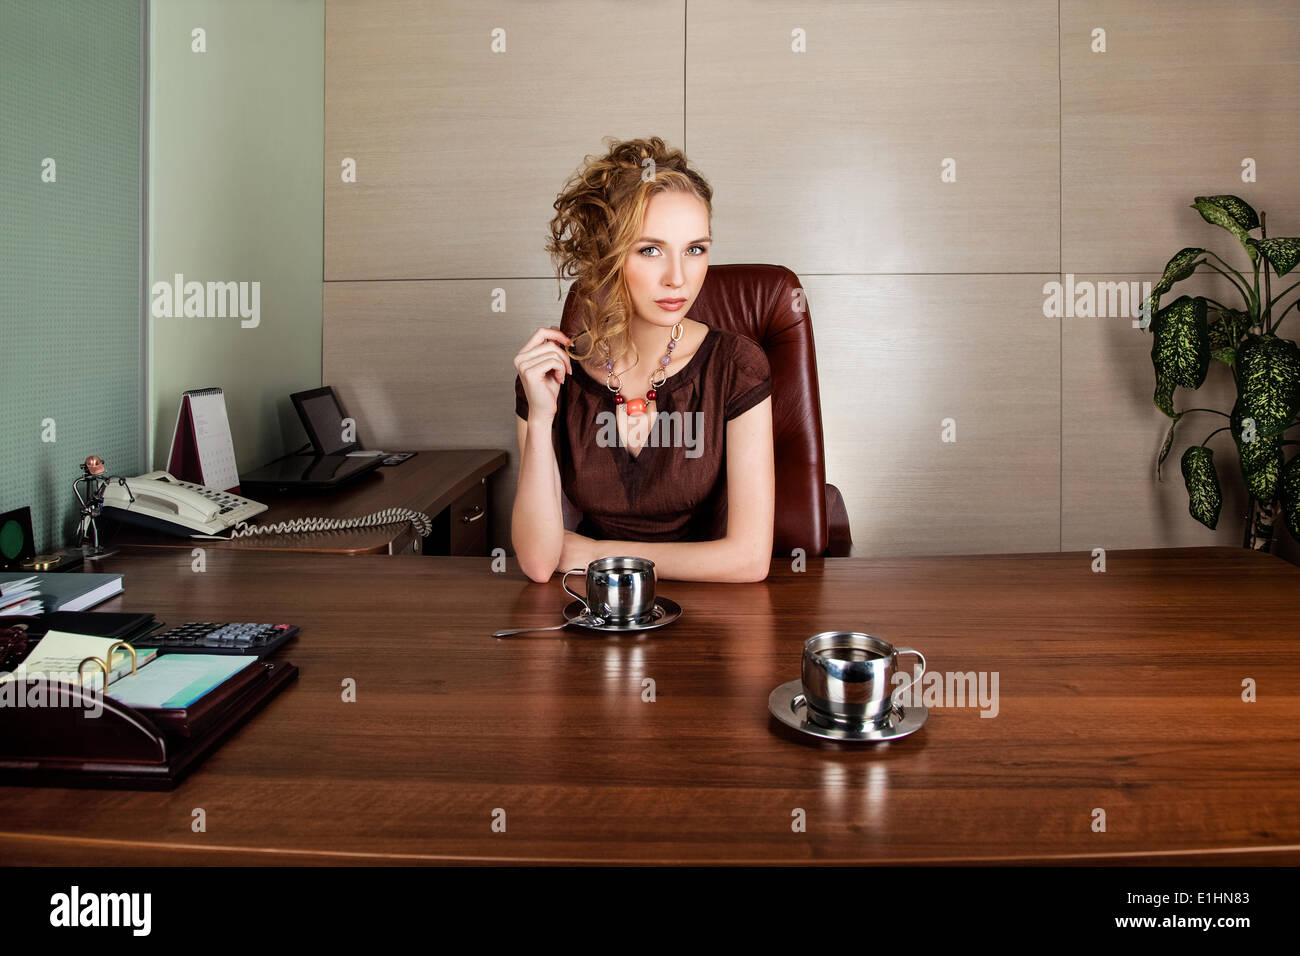 Serious businesswoman consultant in modern office interior - Stock Image